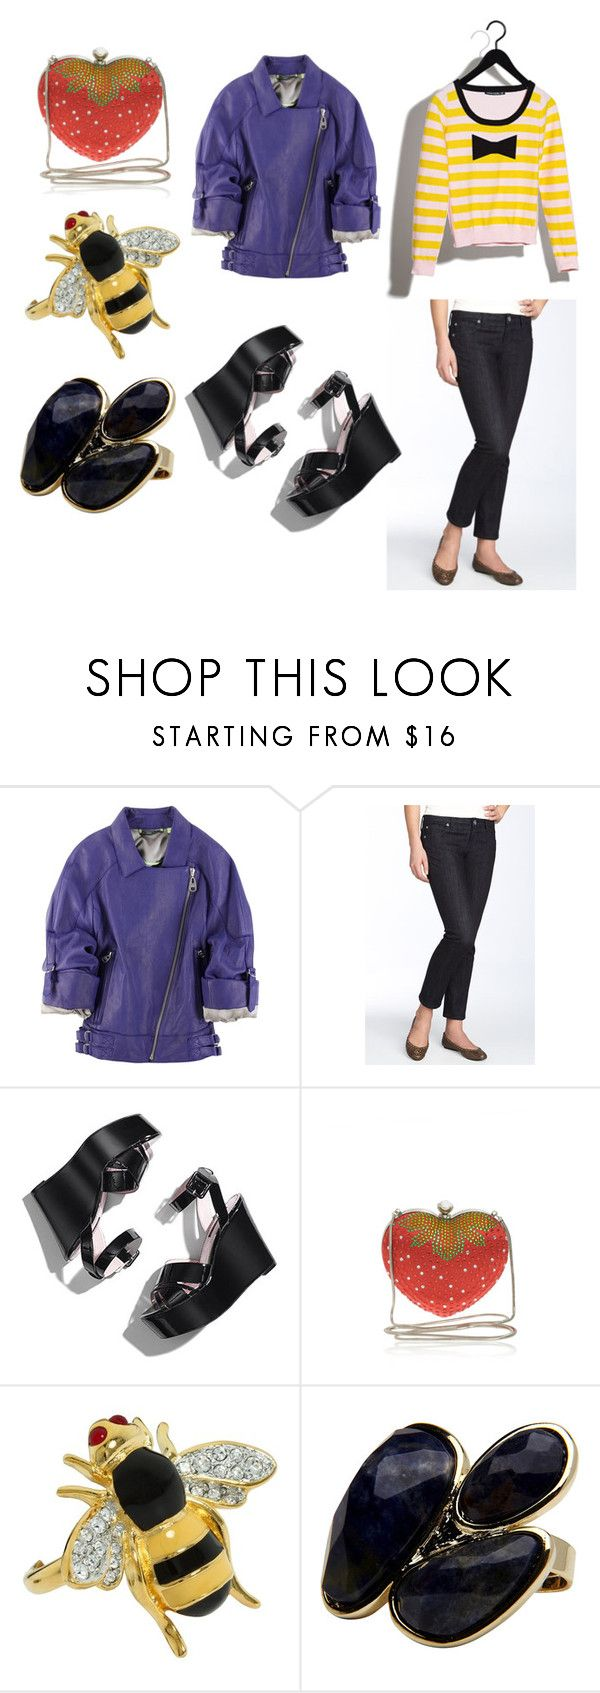 Young BSp FG by skugge on Polyvore featuring мода, Doma, KUT from the Kloth, ASOS, Kenneth Jay Lane and H&M